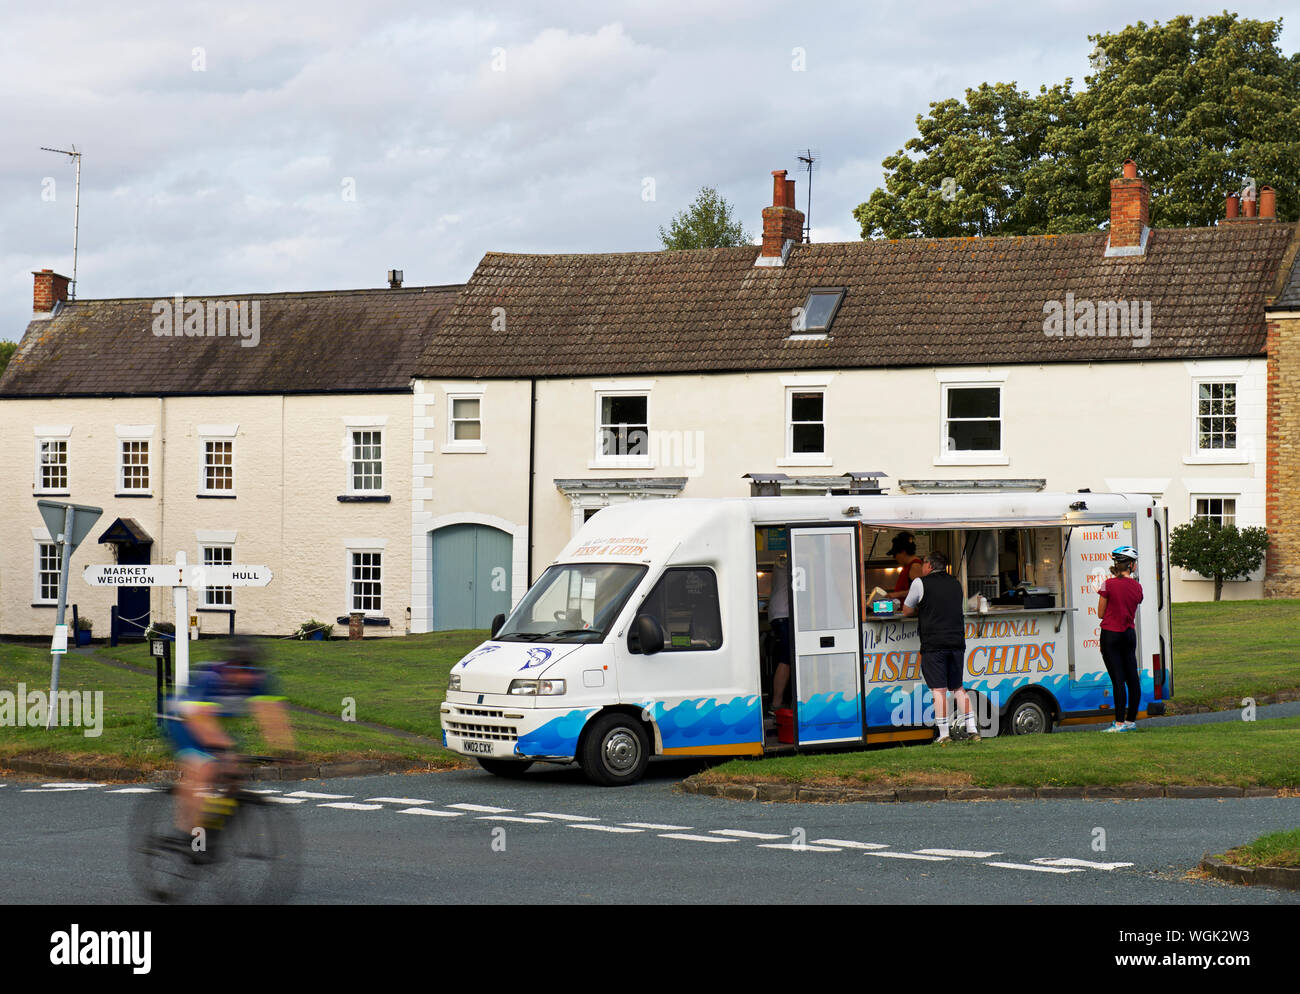 mobile-fish-chip-van-in-north-newbald-a-village-in-east-yorkshire-england-uk-WGK2W3.jpg